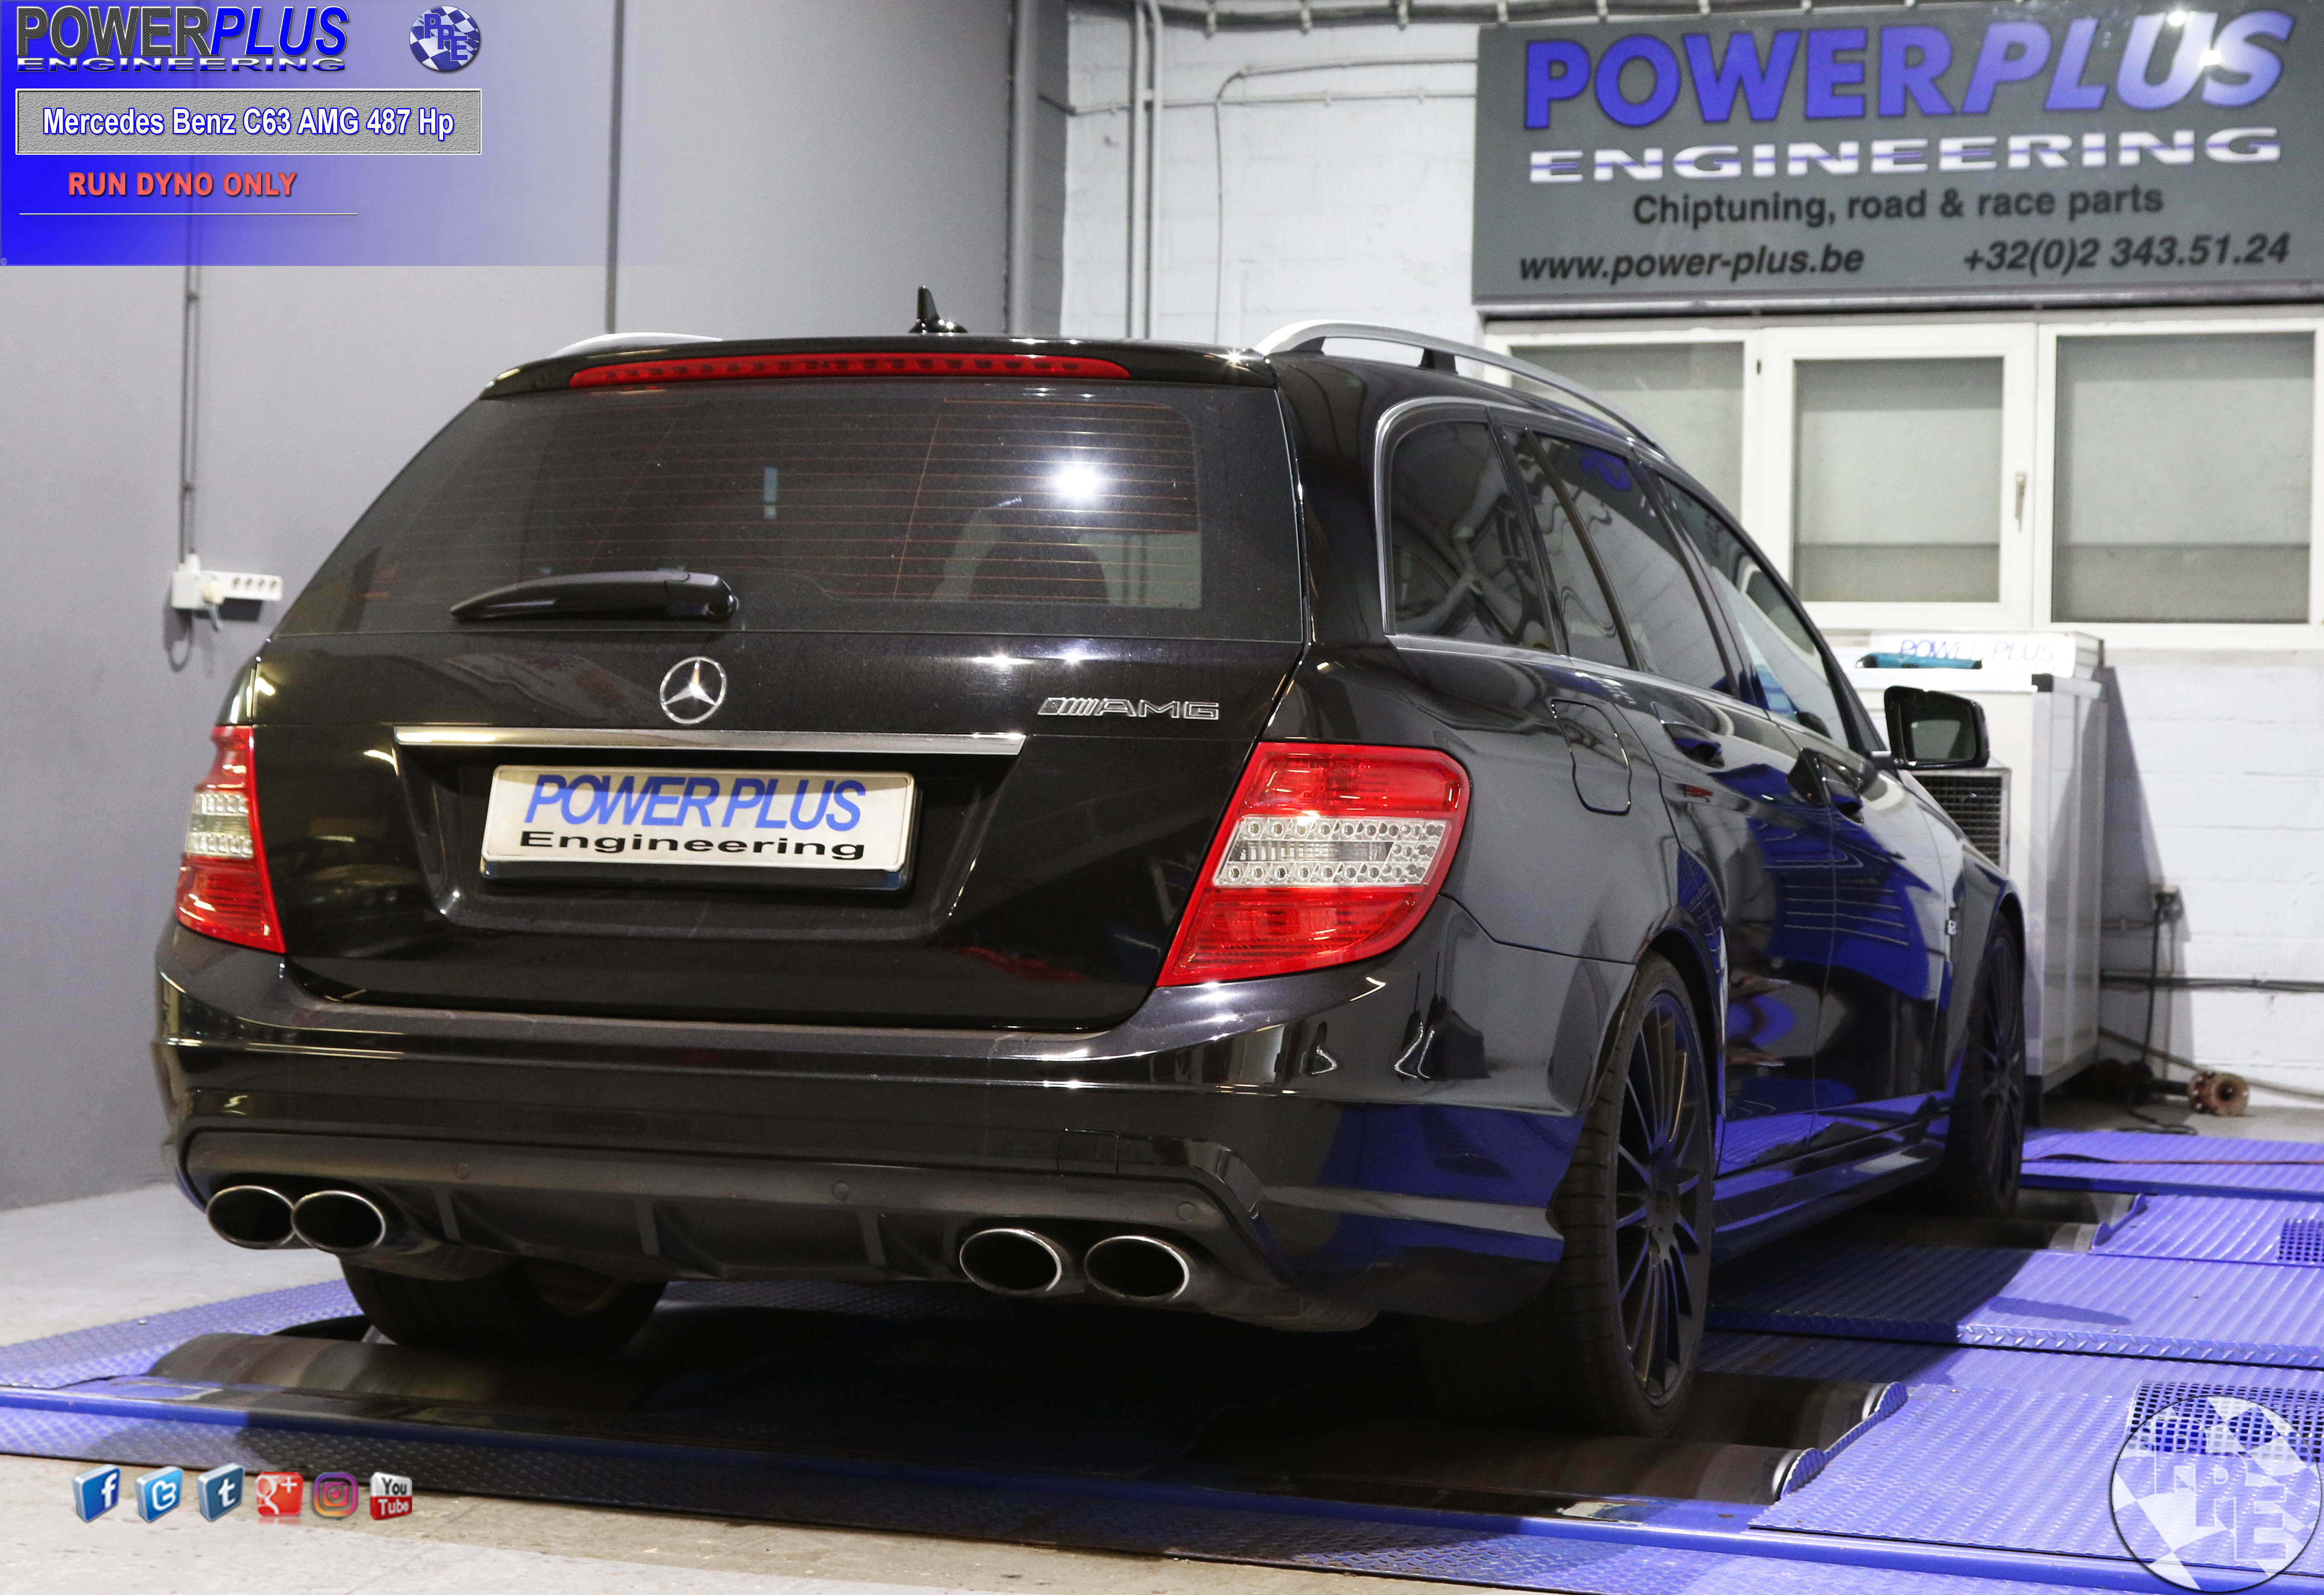 Mercedes Benz C63 Amg 487 Hp At Ppe Dyno Power Plus Engineering Final